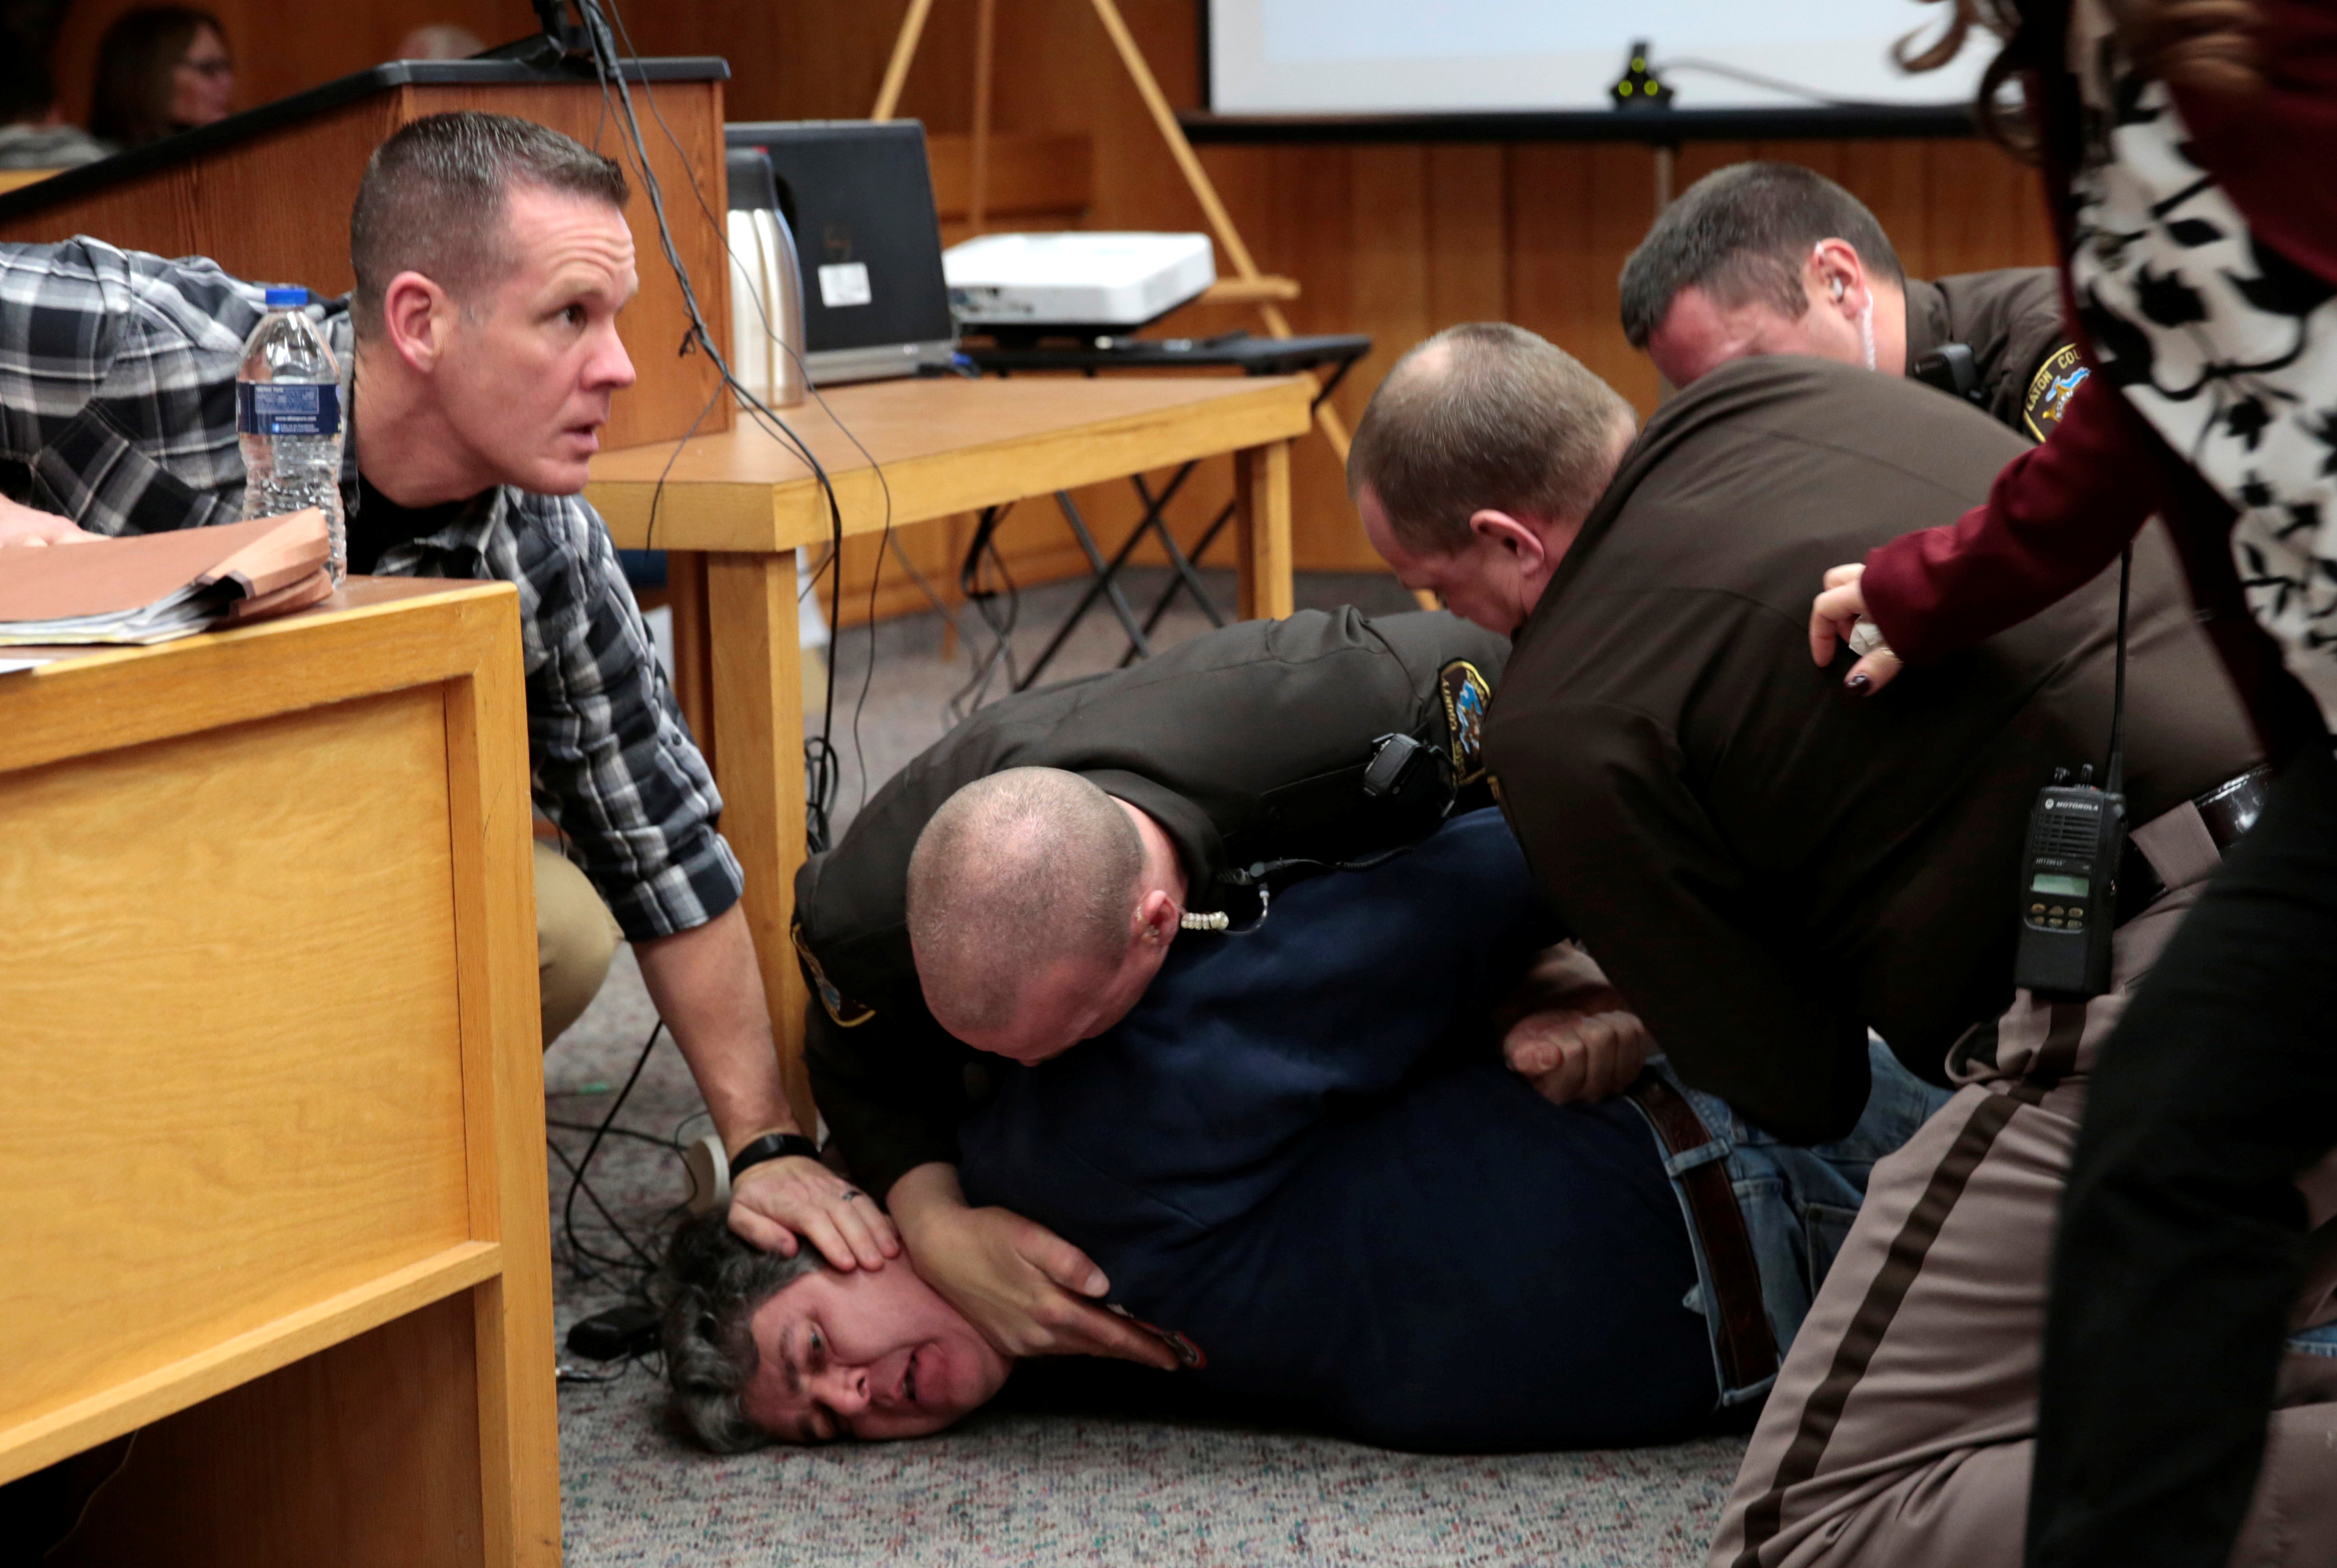 Eaton County sheriffs restrain Randall Margraves after he lunged at Larry Nassar, a former team USA Gymnastics doctor who pleaded guilty in November 2017 to sexual assault charges, during victim statements of his sentencing in the Eaton County Circui...